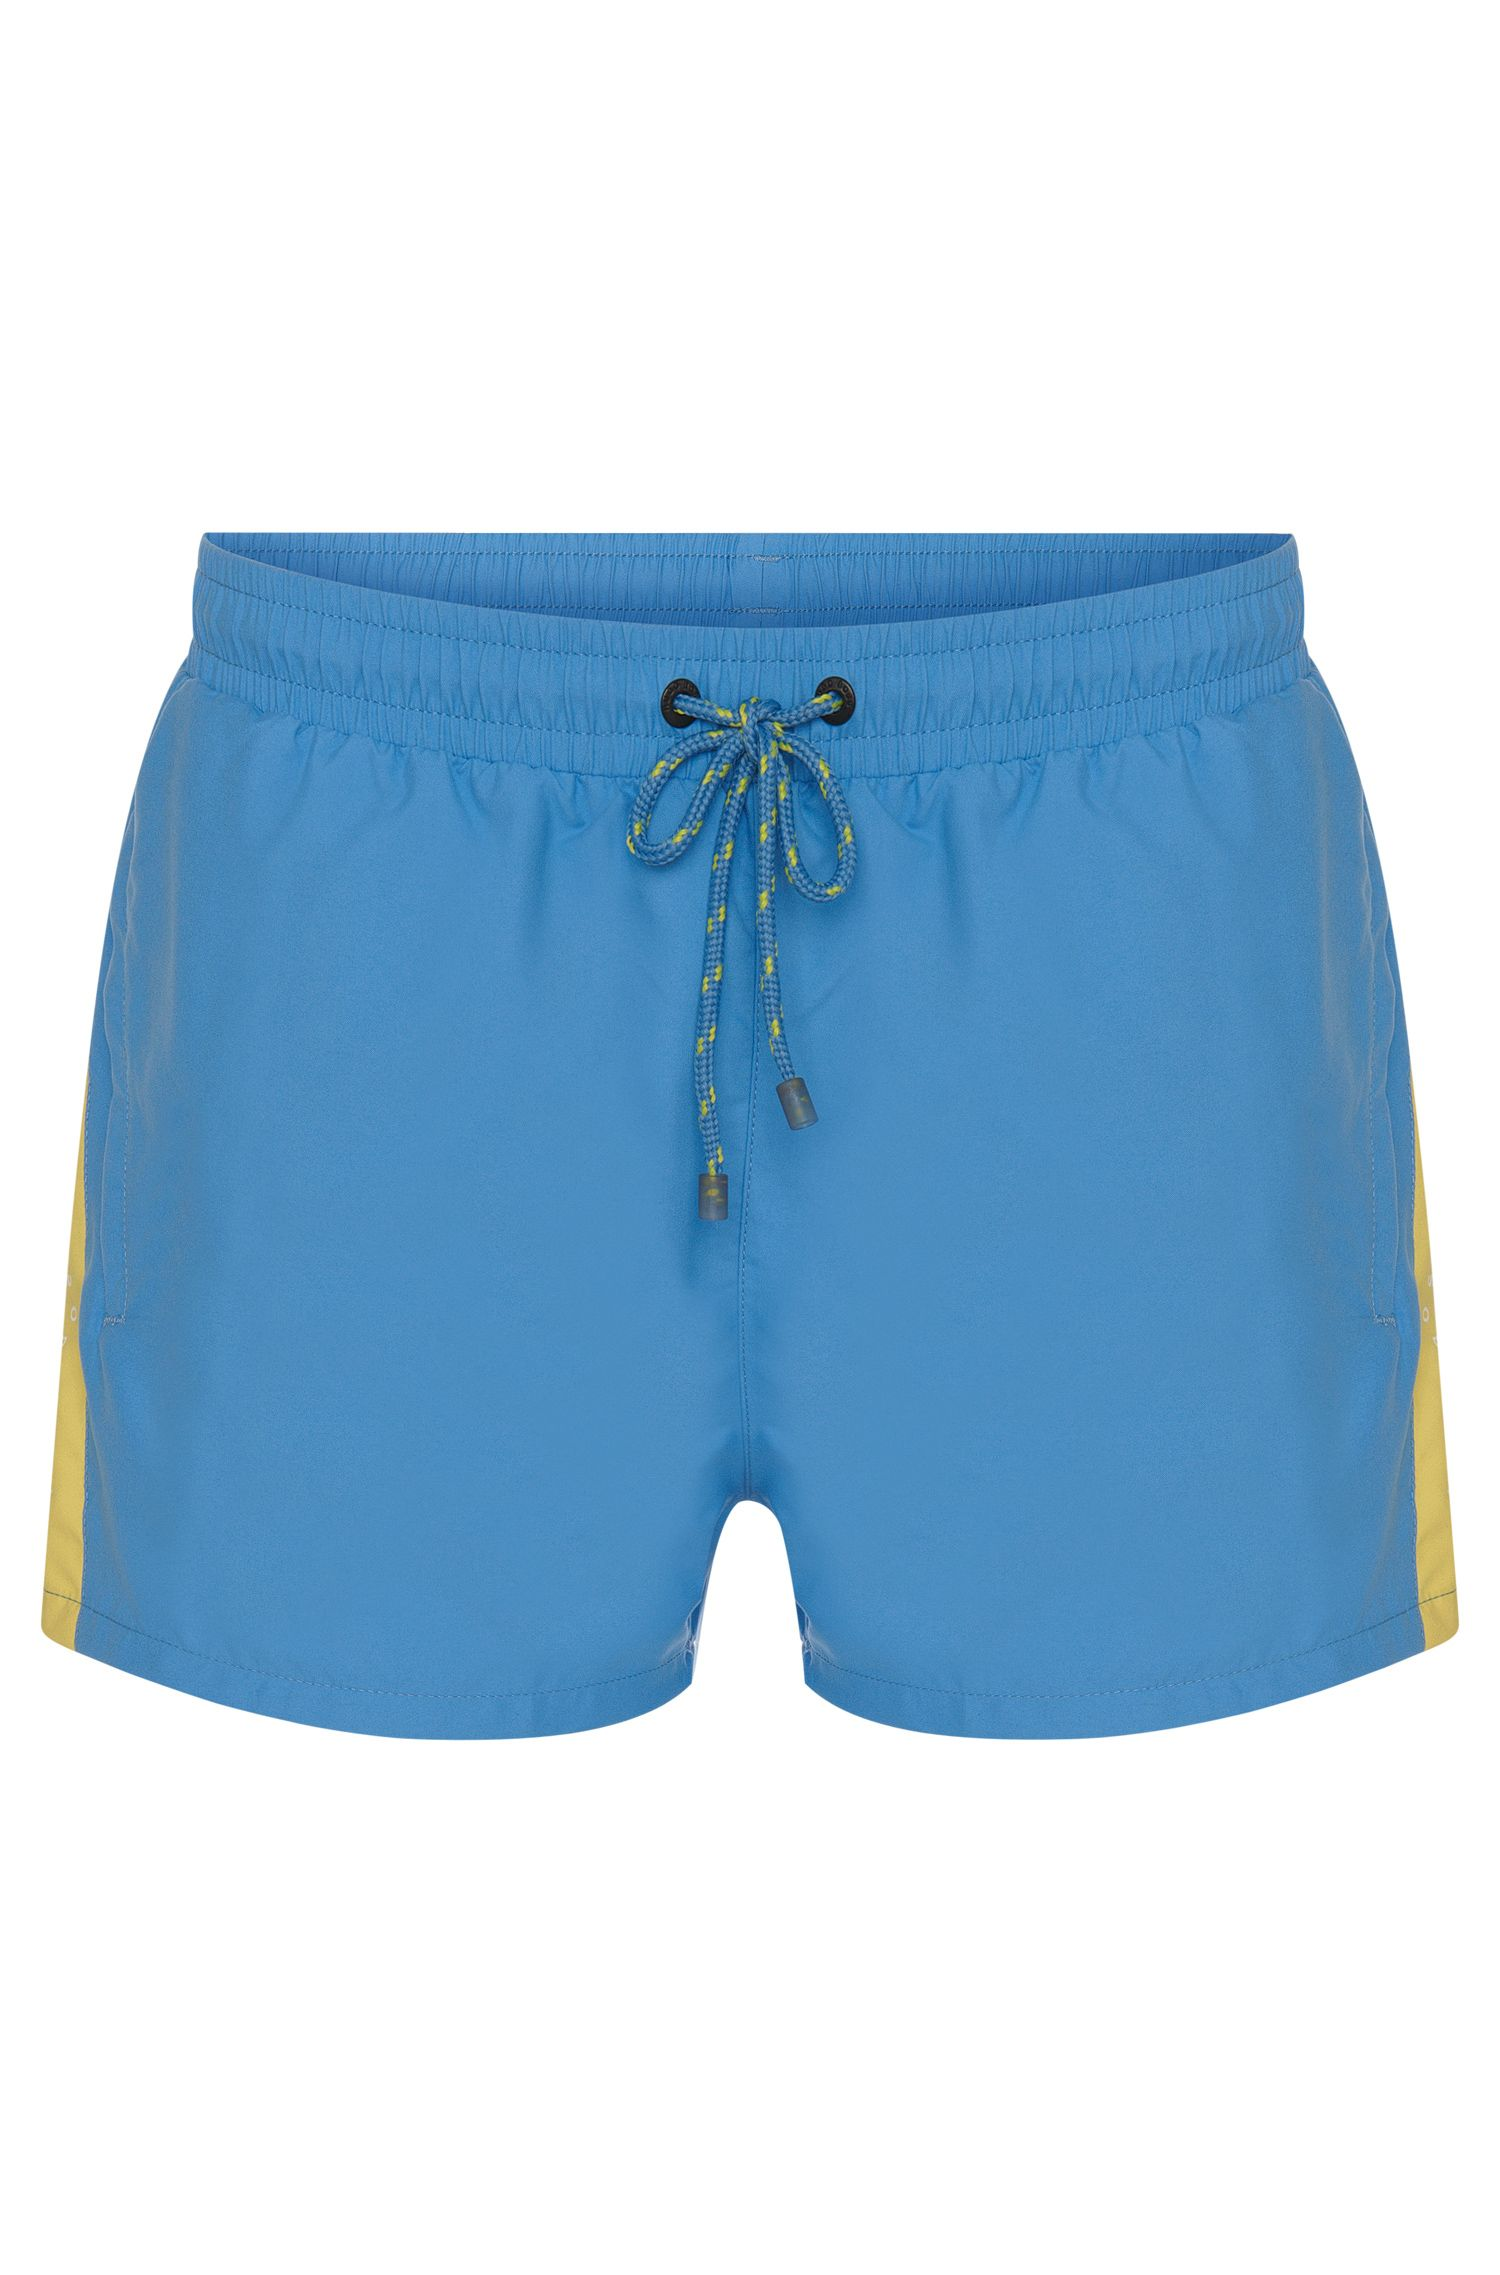 'Piabuco' | Quick Dry Colorblock Swim Trunks